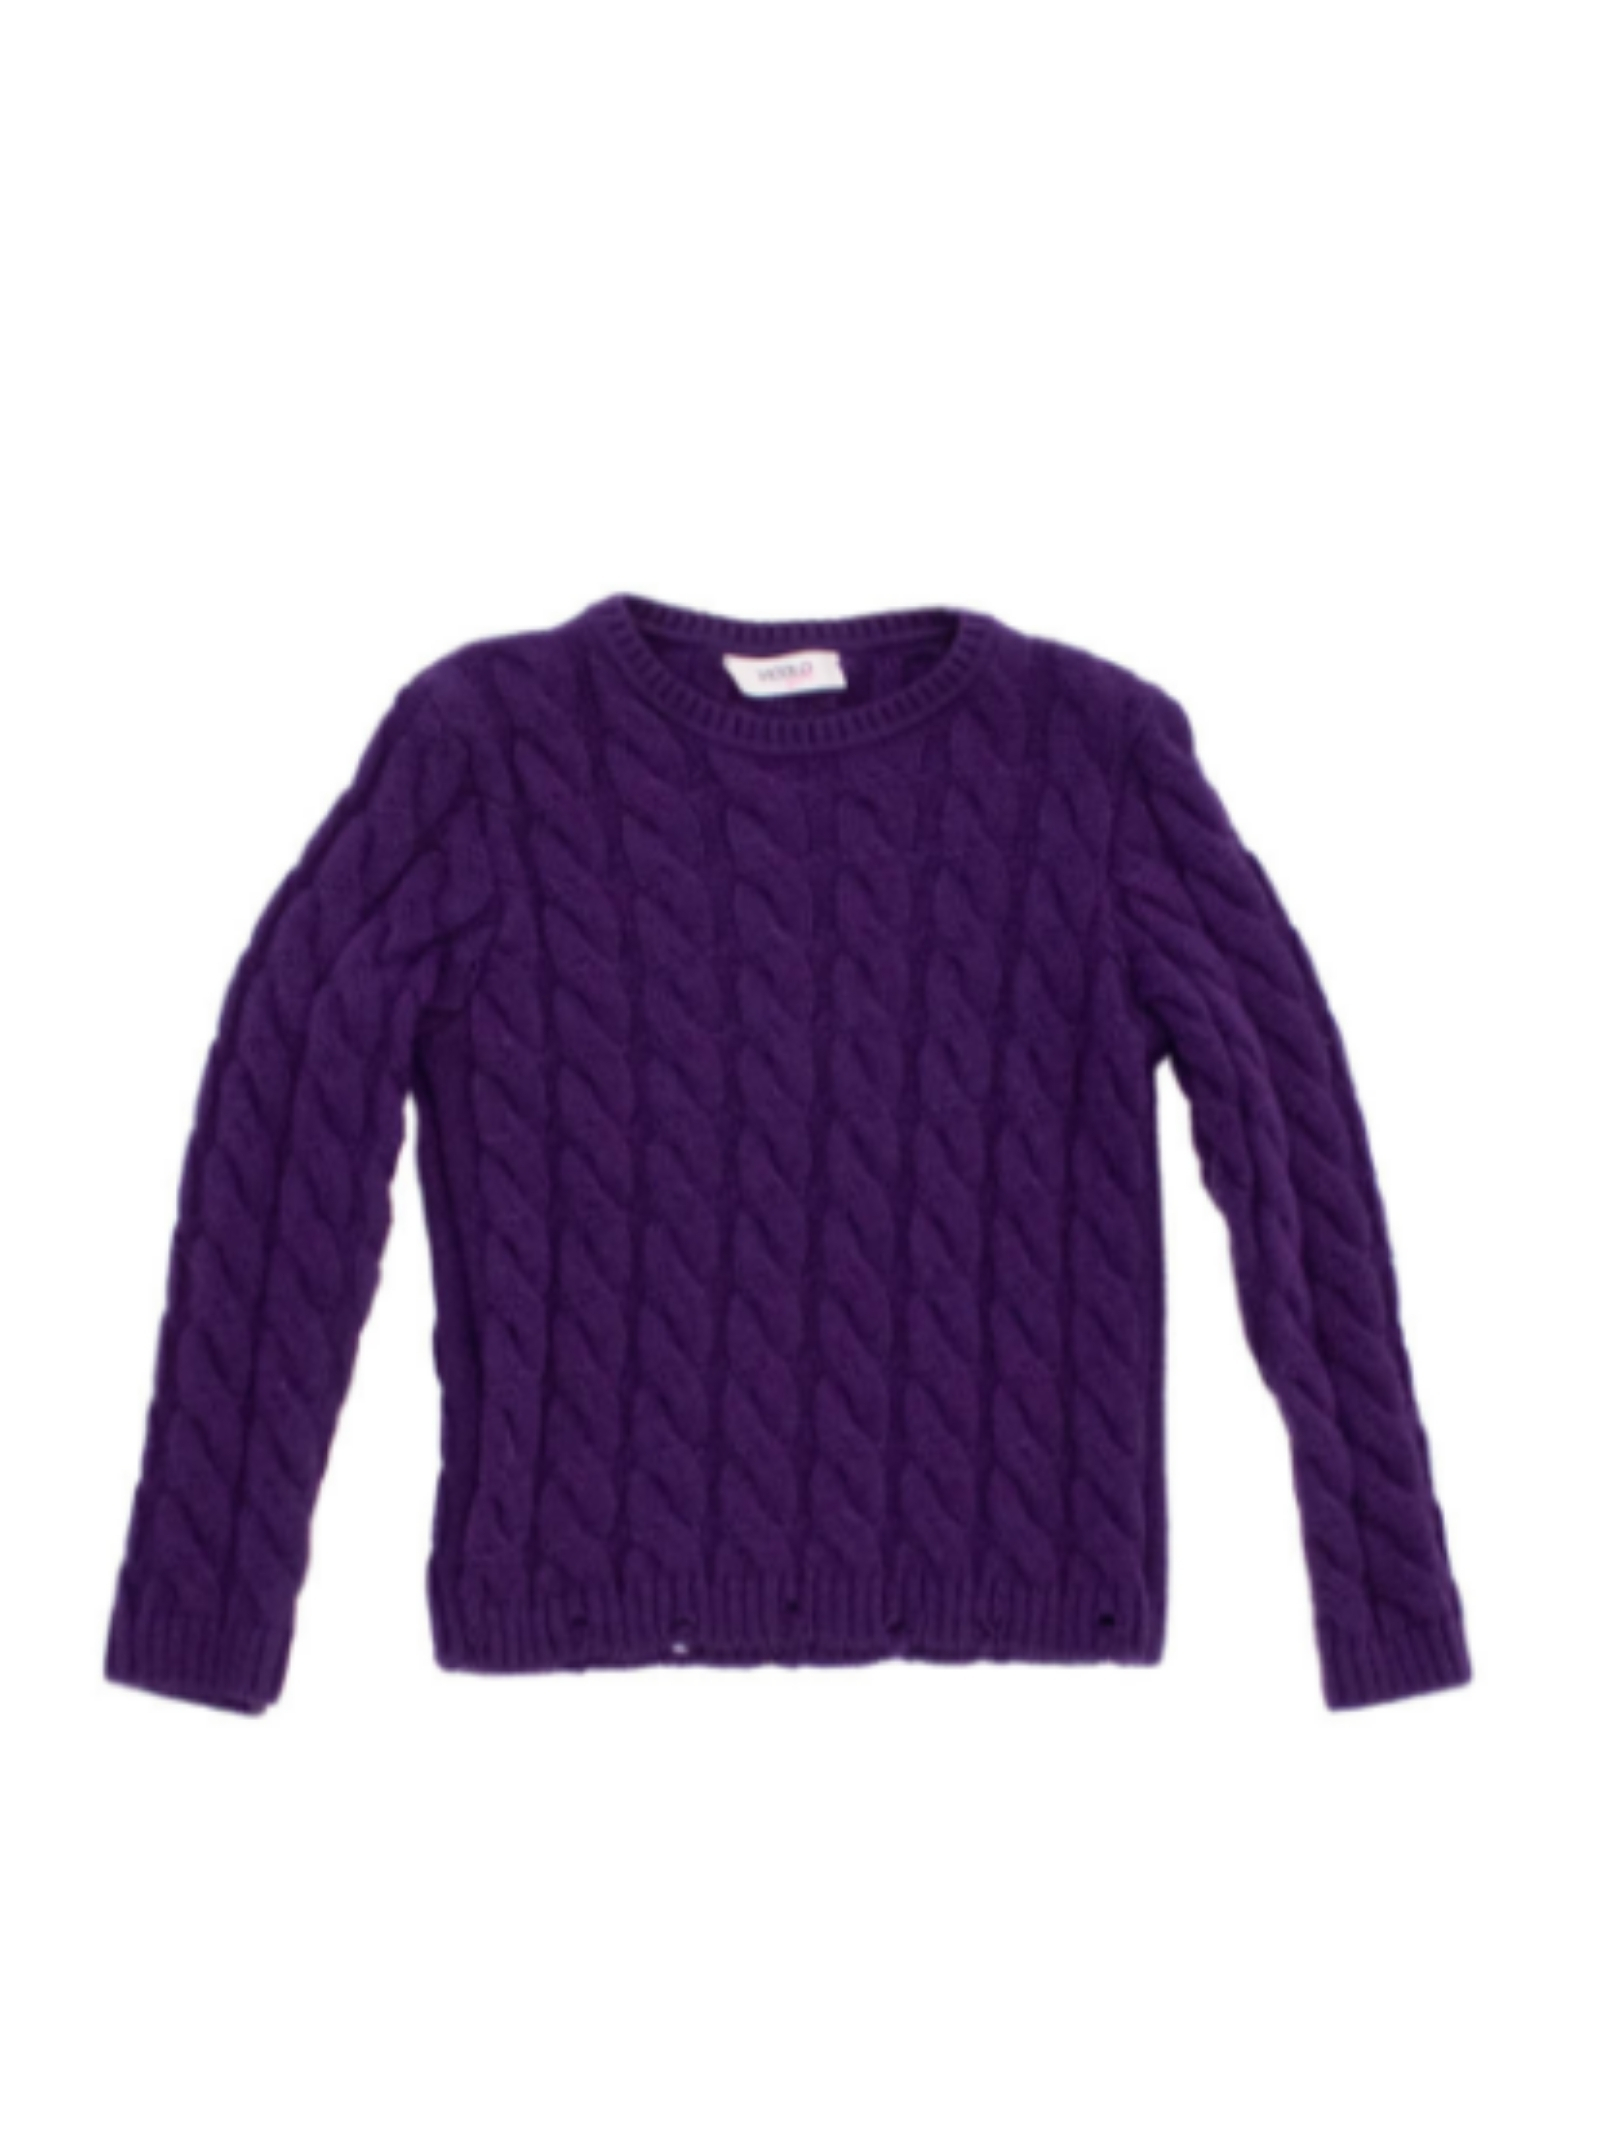 Fringed Effect Sweater for Girls VICOLO KIDS |  | 3141W0764VIOLA